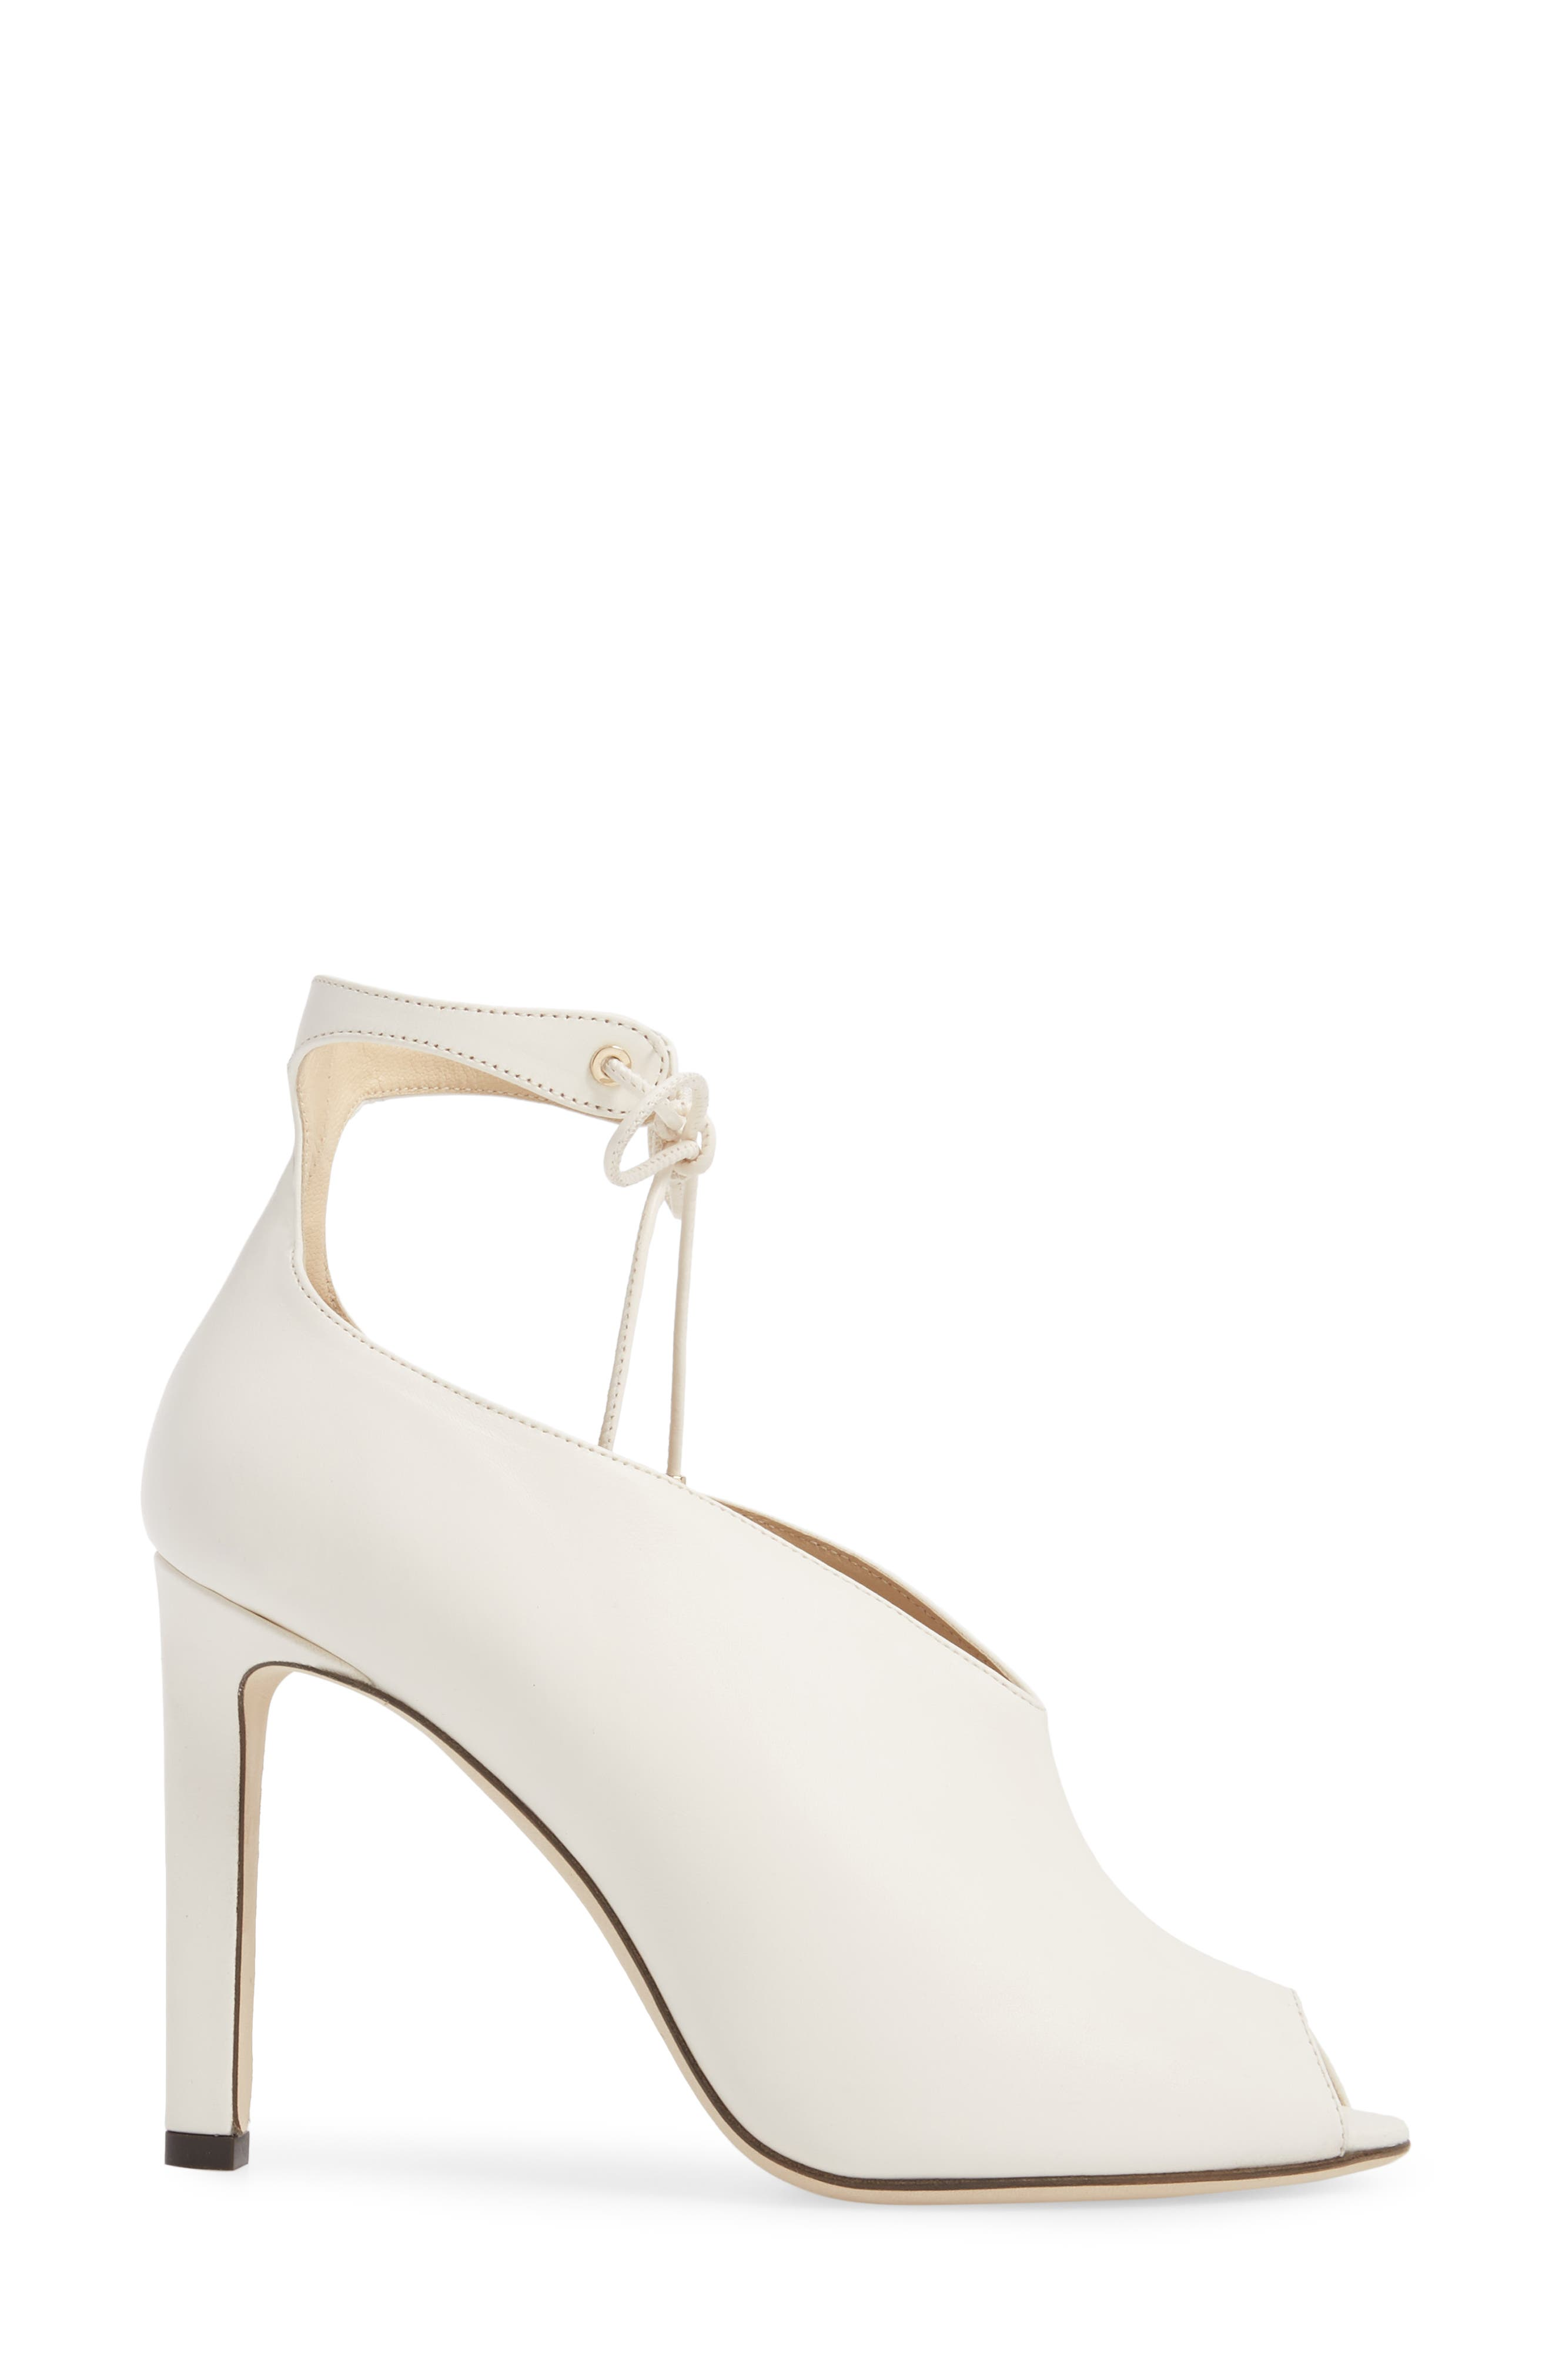 Sayra Ankle Tie Bootie,                             Alternate thumbnail 3, color,                             Chalk